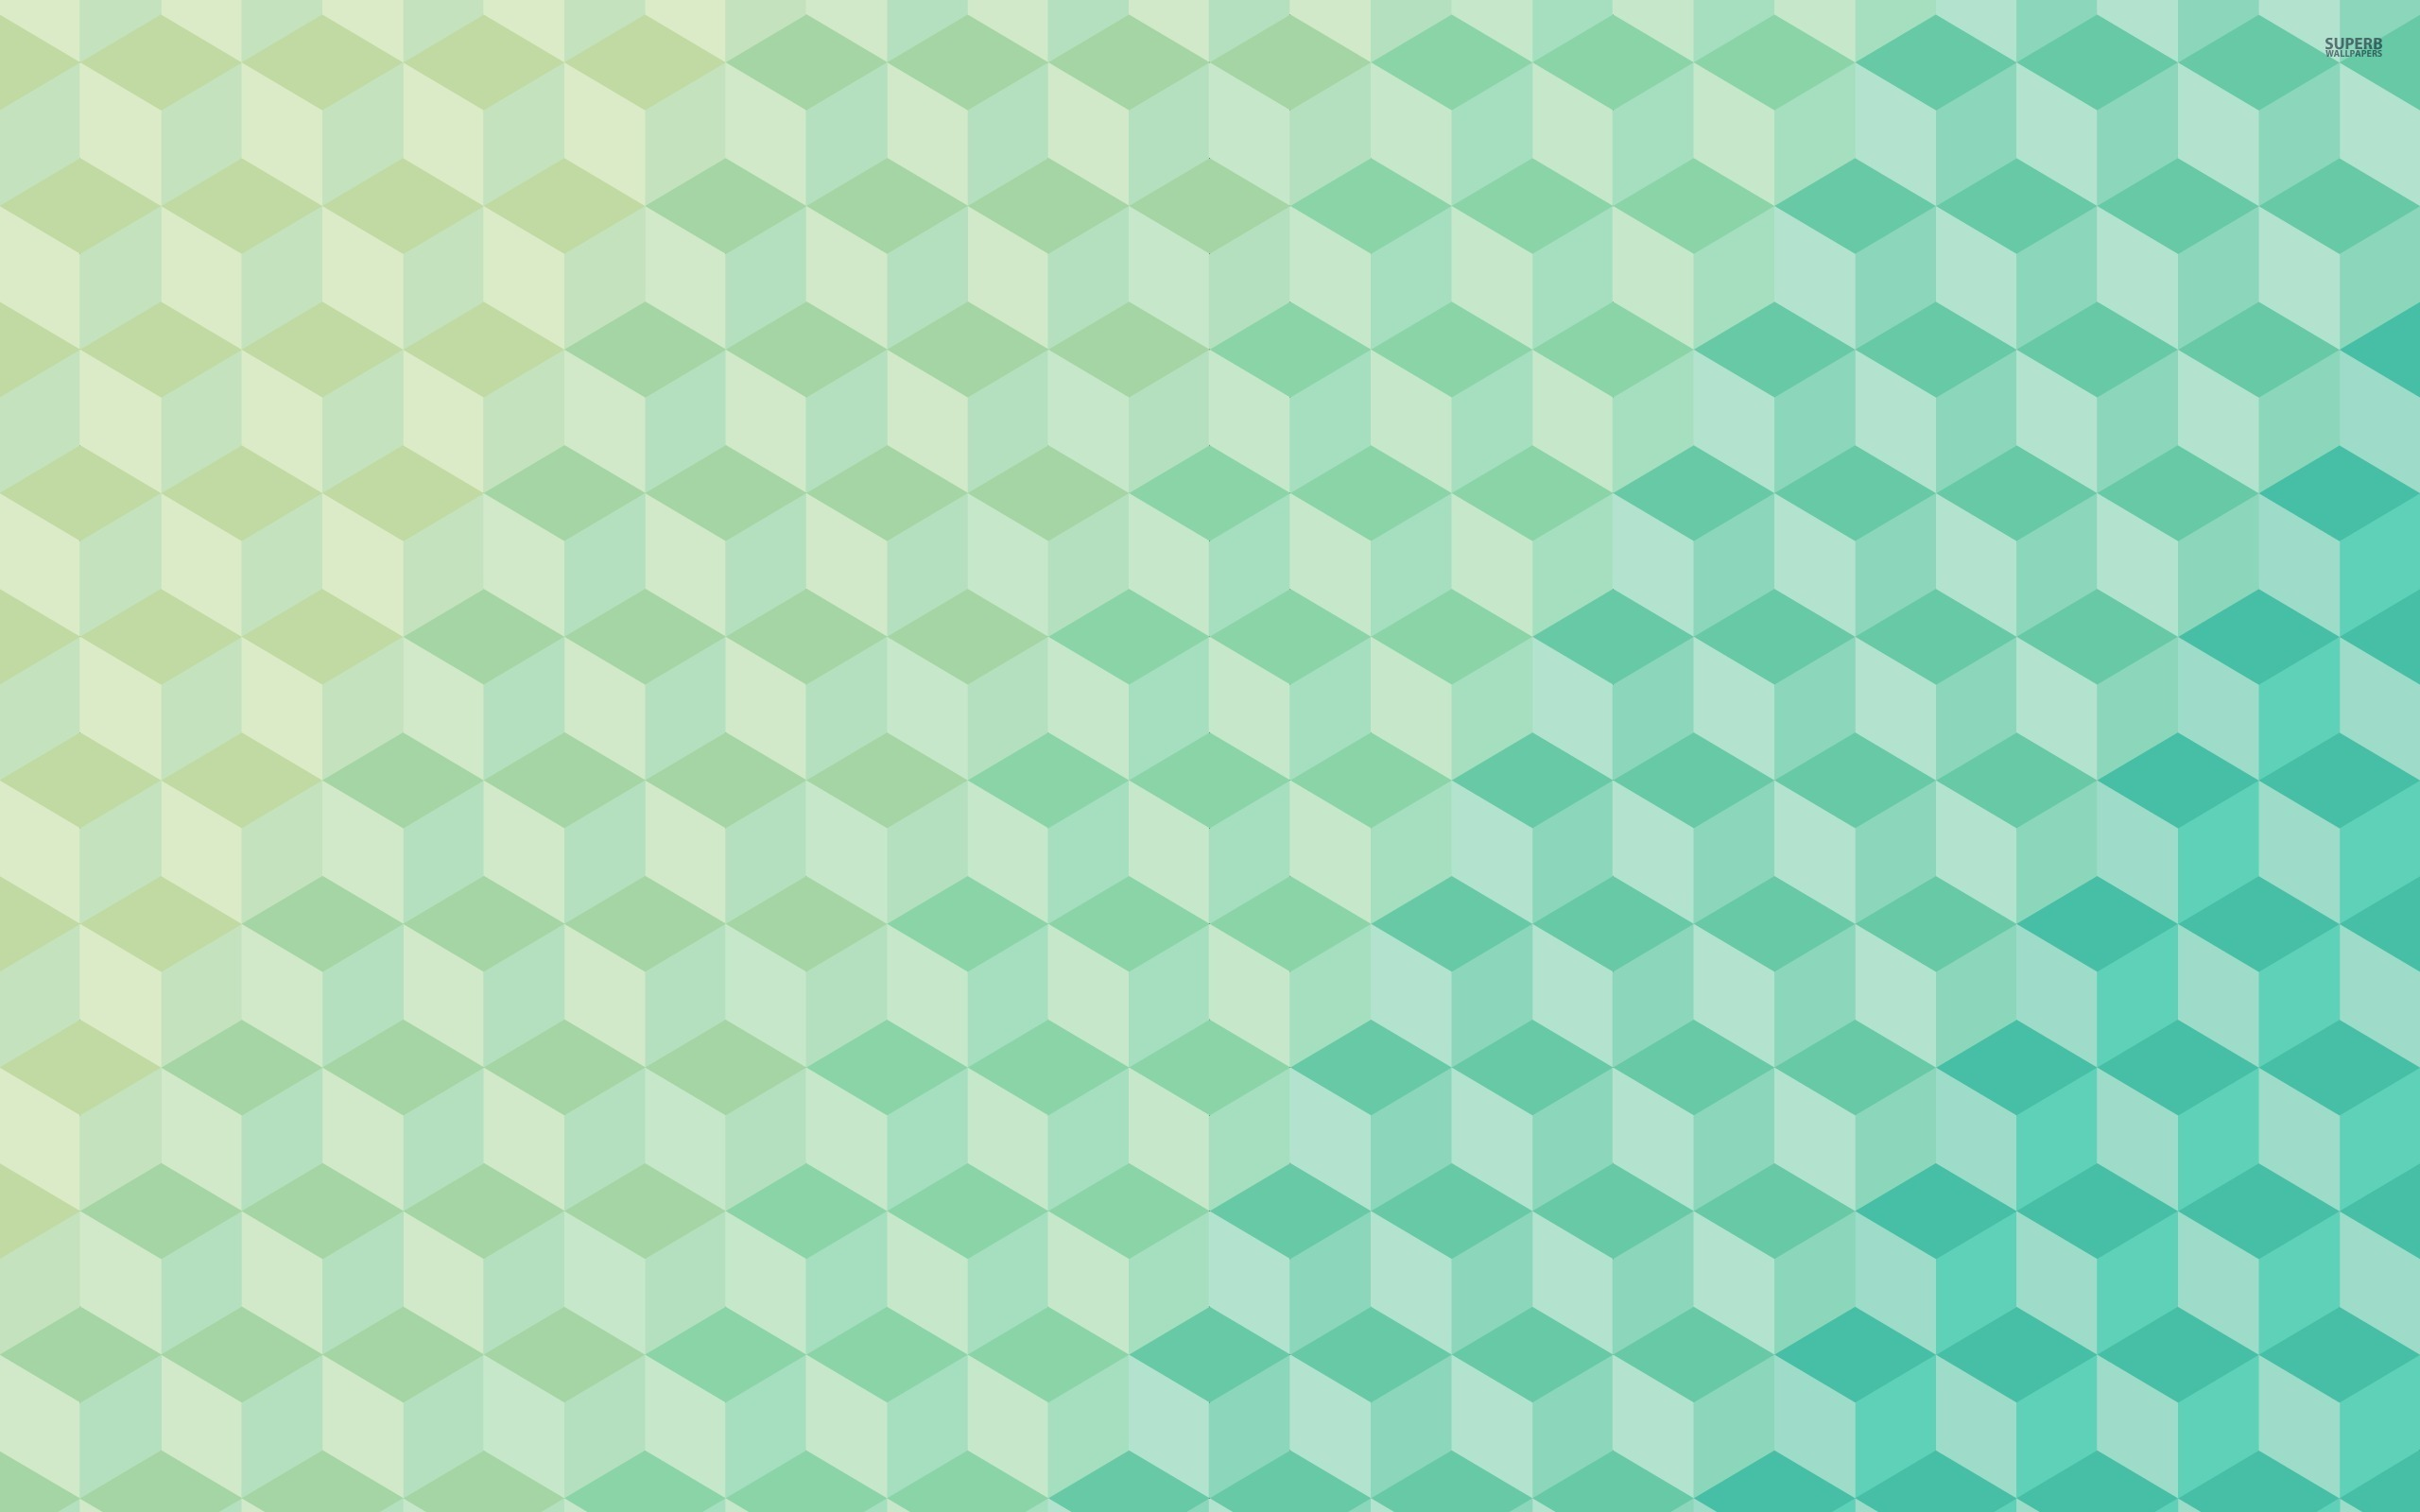 Cube pattern wallpaper 2560x1600